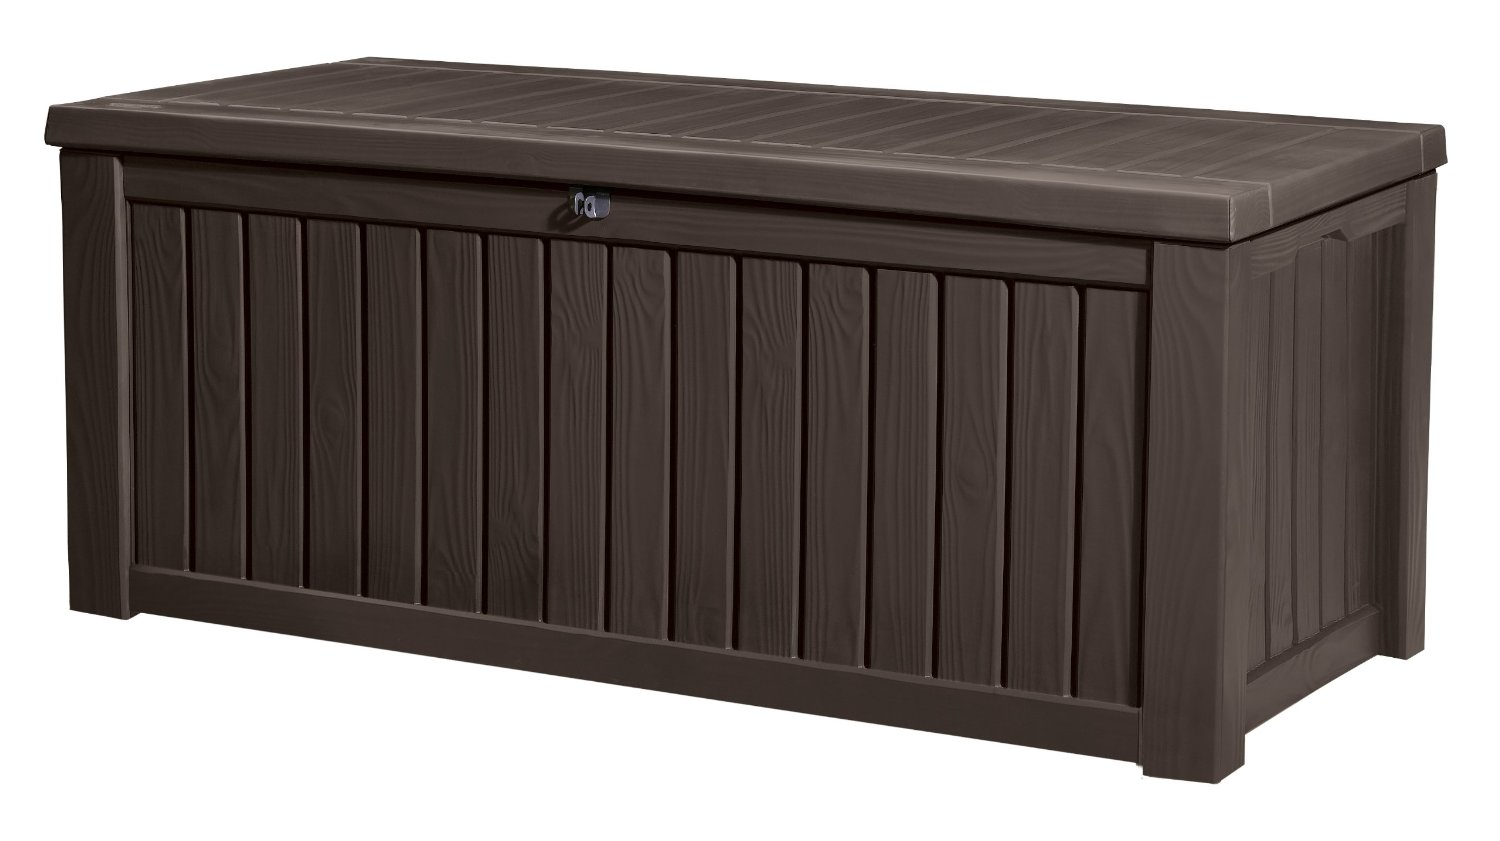 Keter Rockwood Plastic Deck Storage Container Box